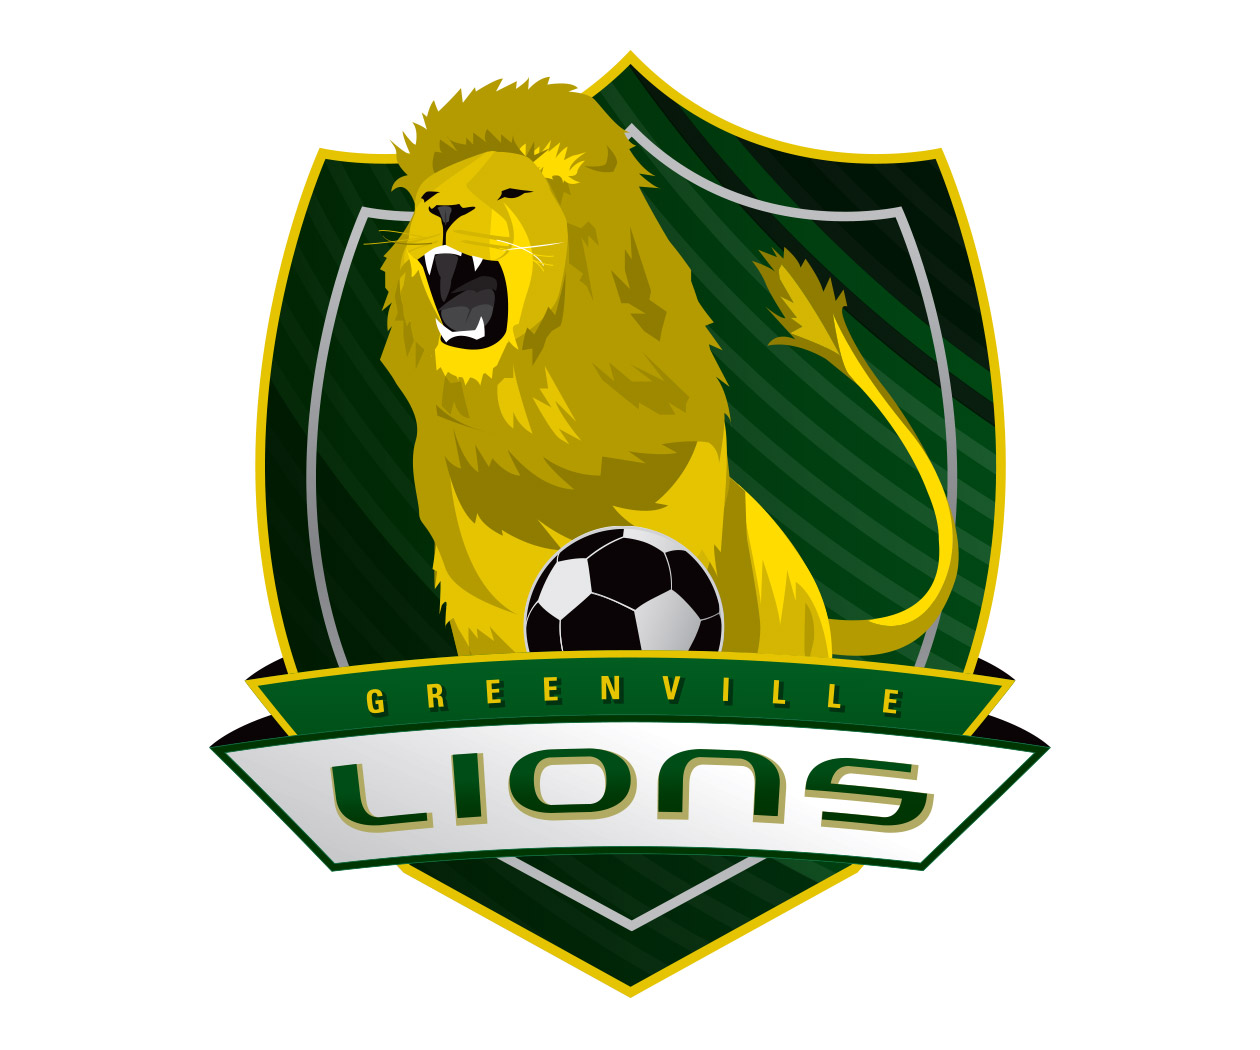 custom soccer logo design for greenville lions soccer by jordan fretz design